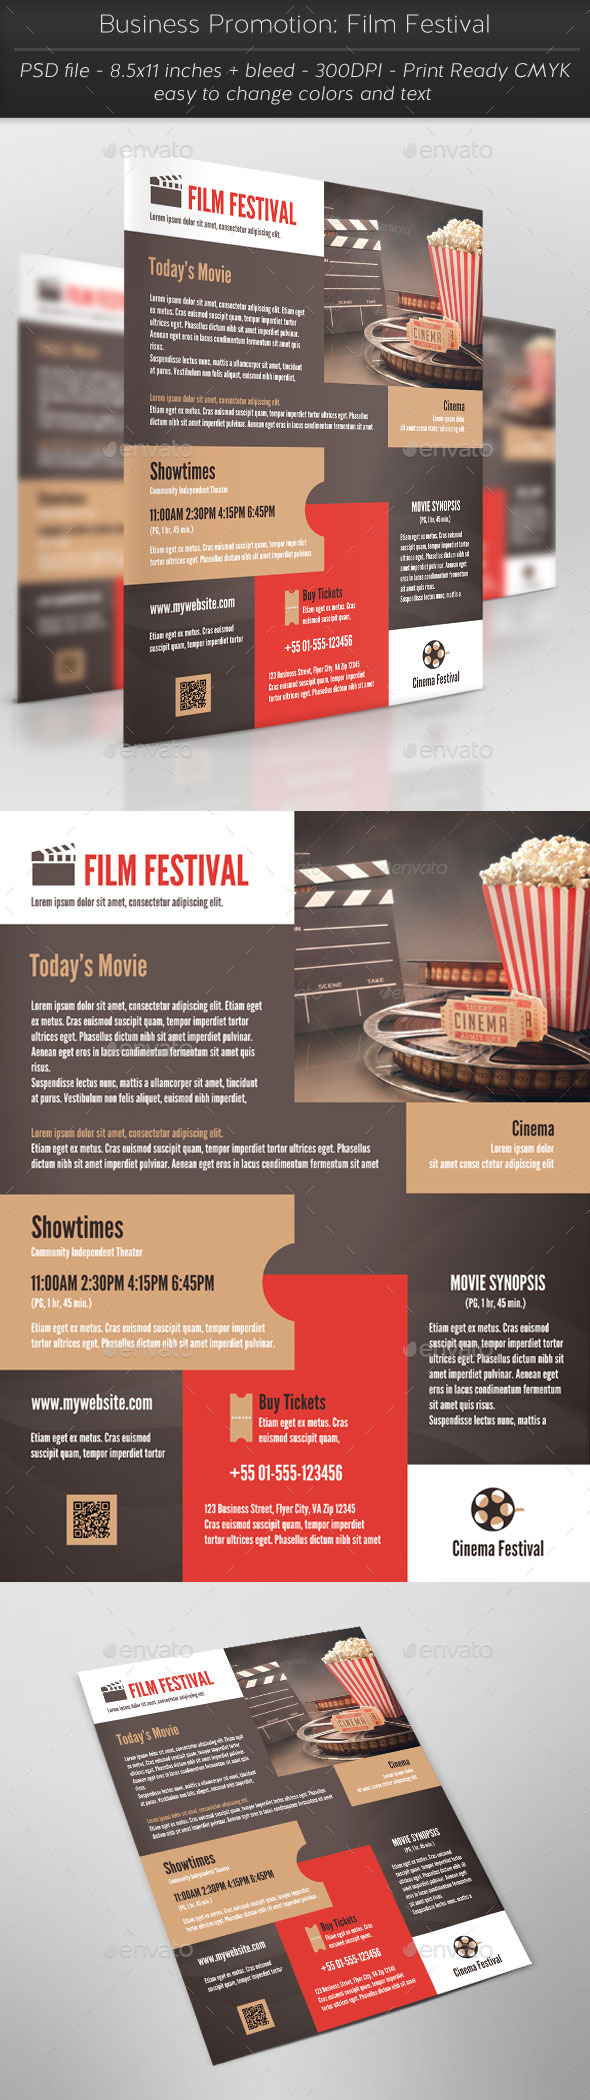 Business Promotion Film Festival